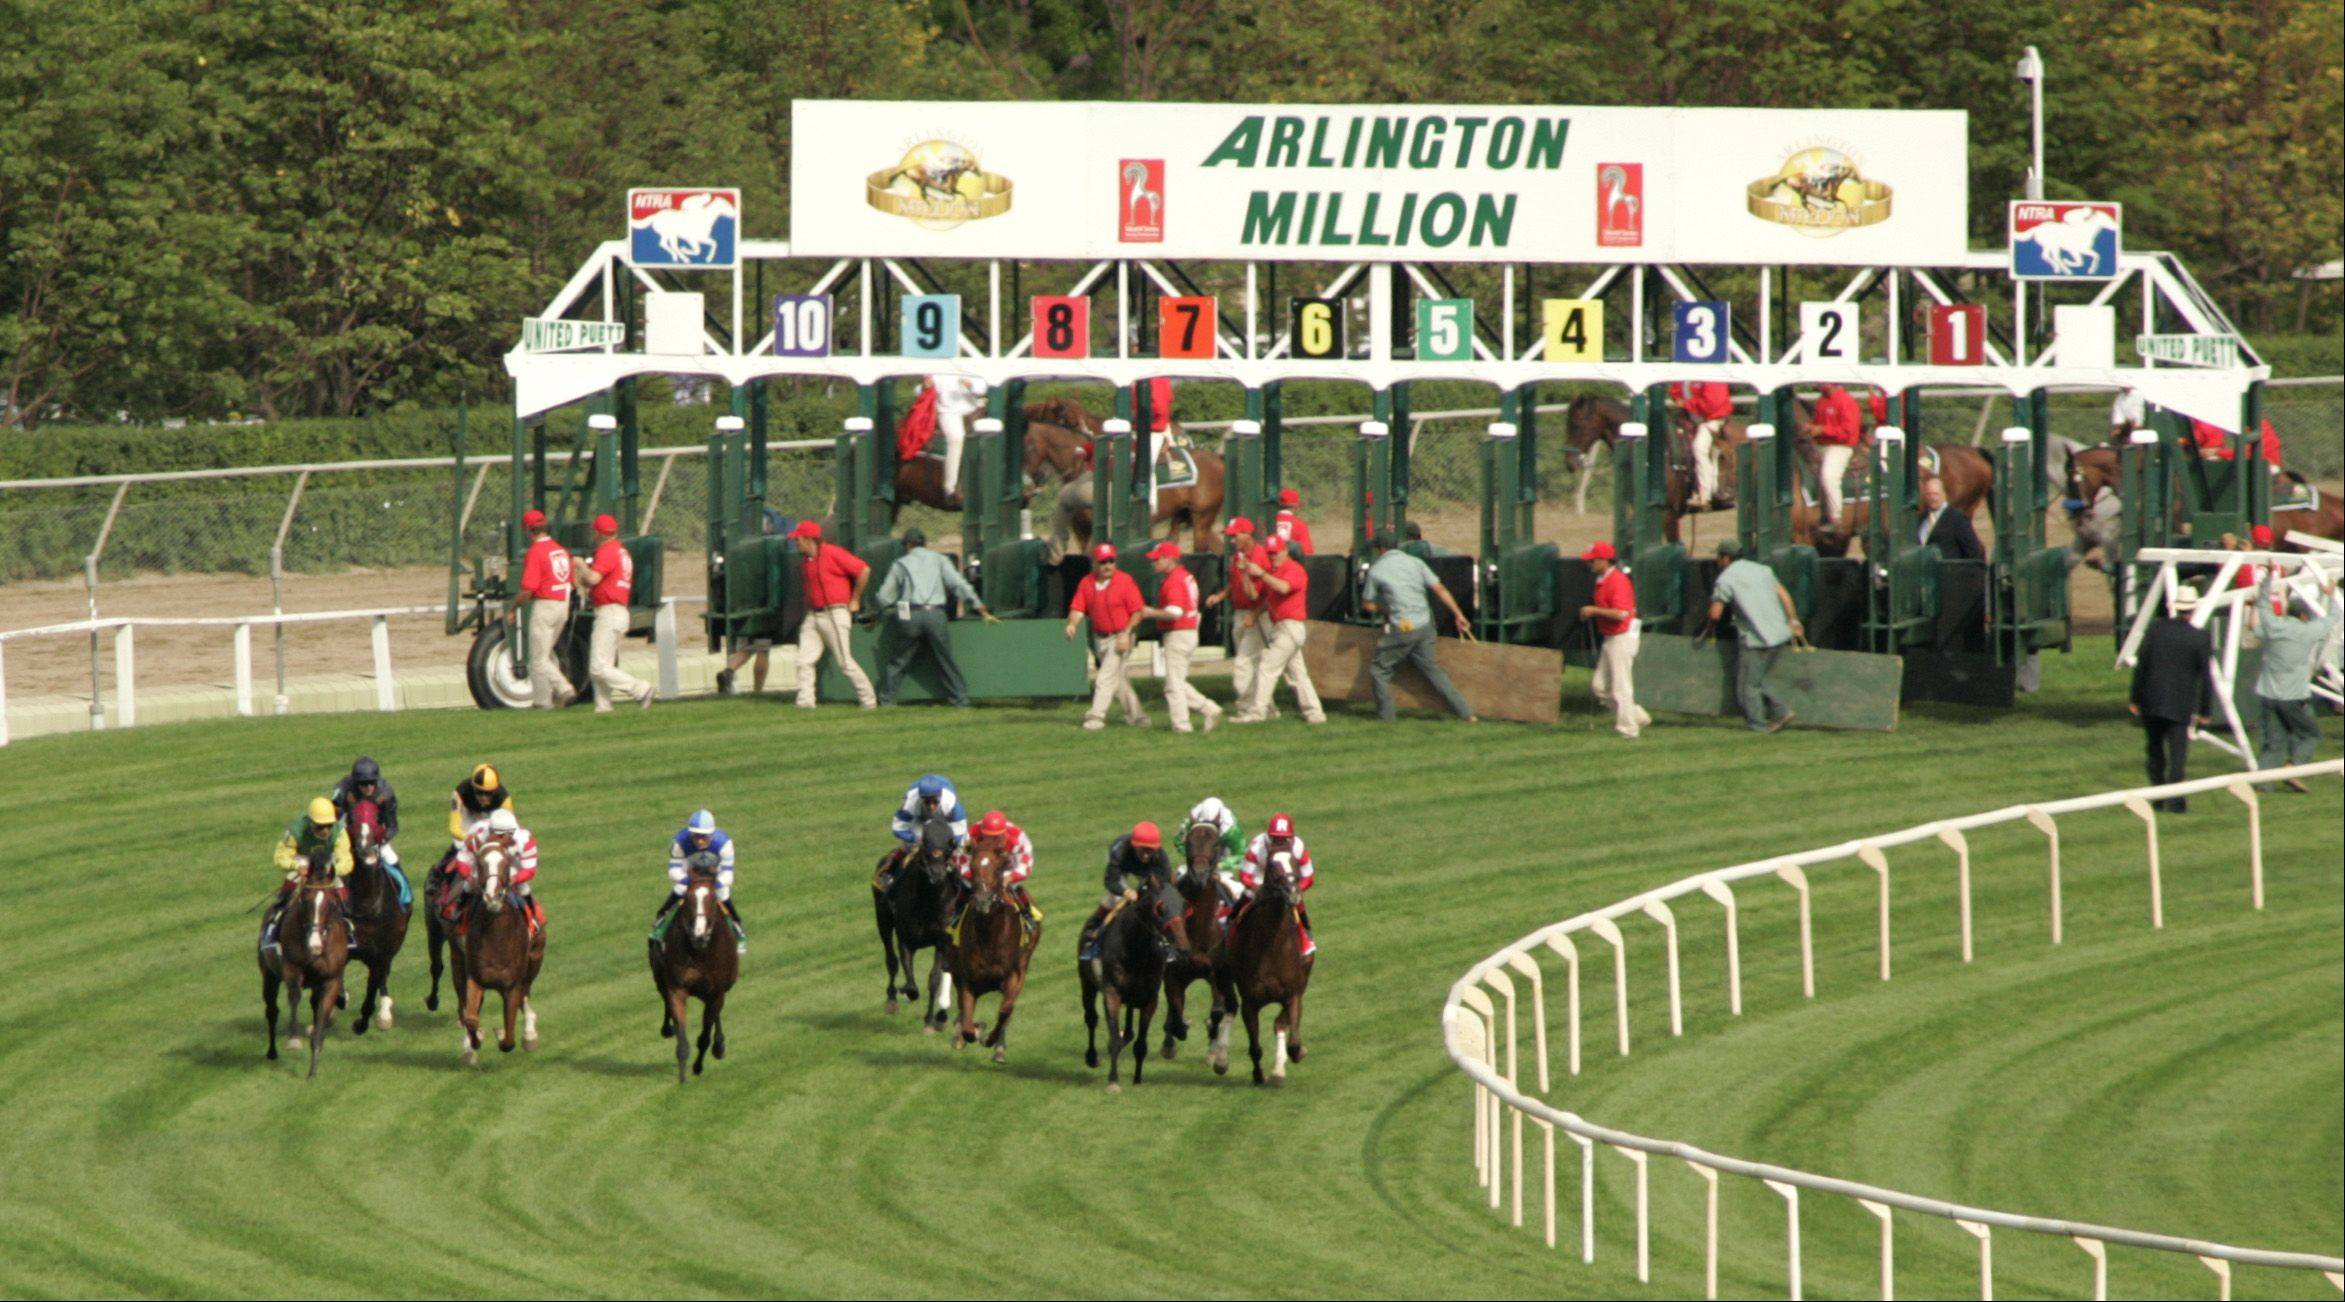 And..They're off during the 2005 Arlington Million.